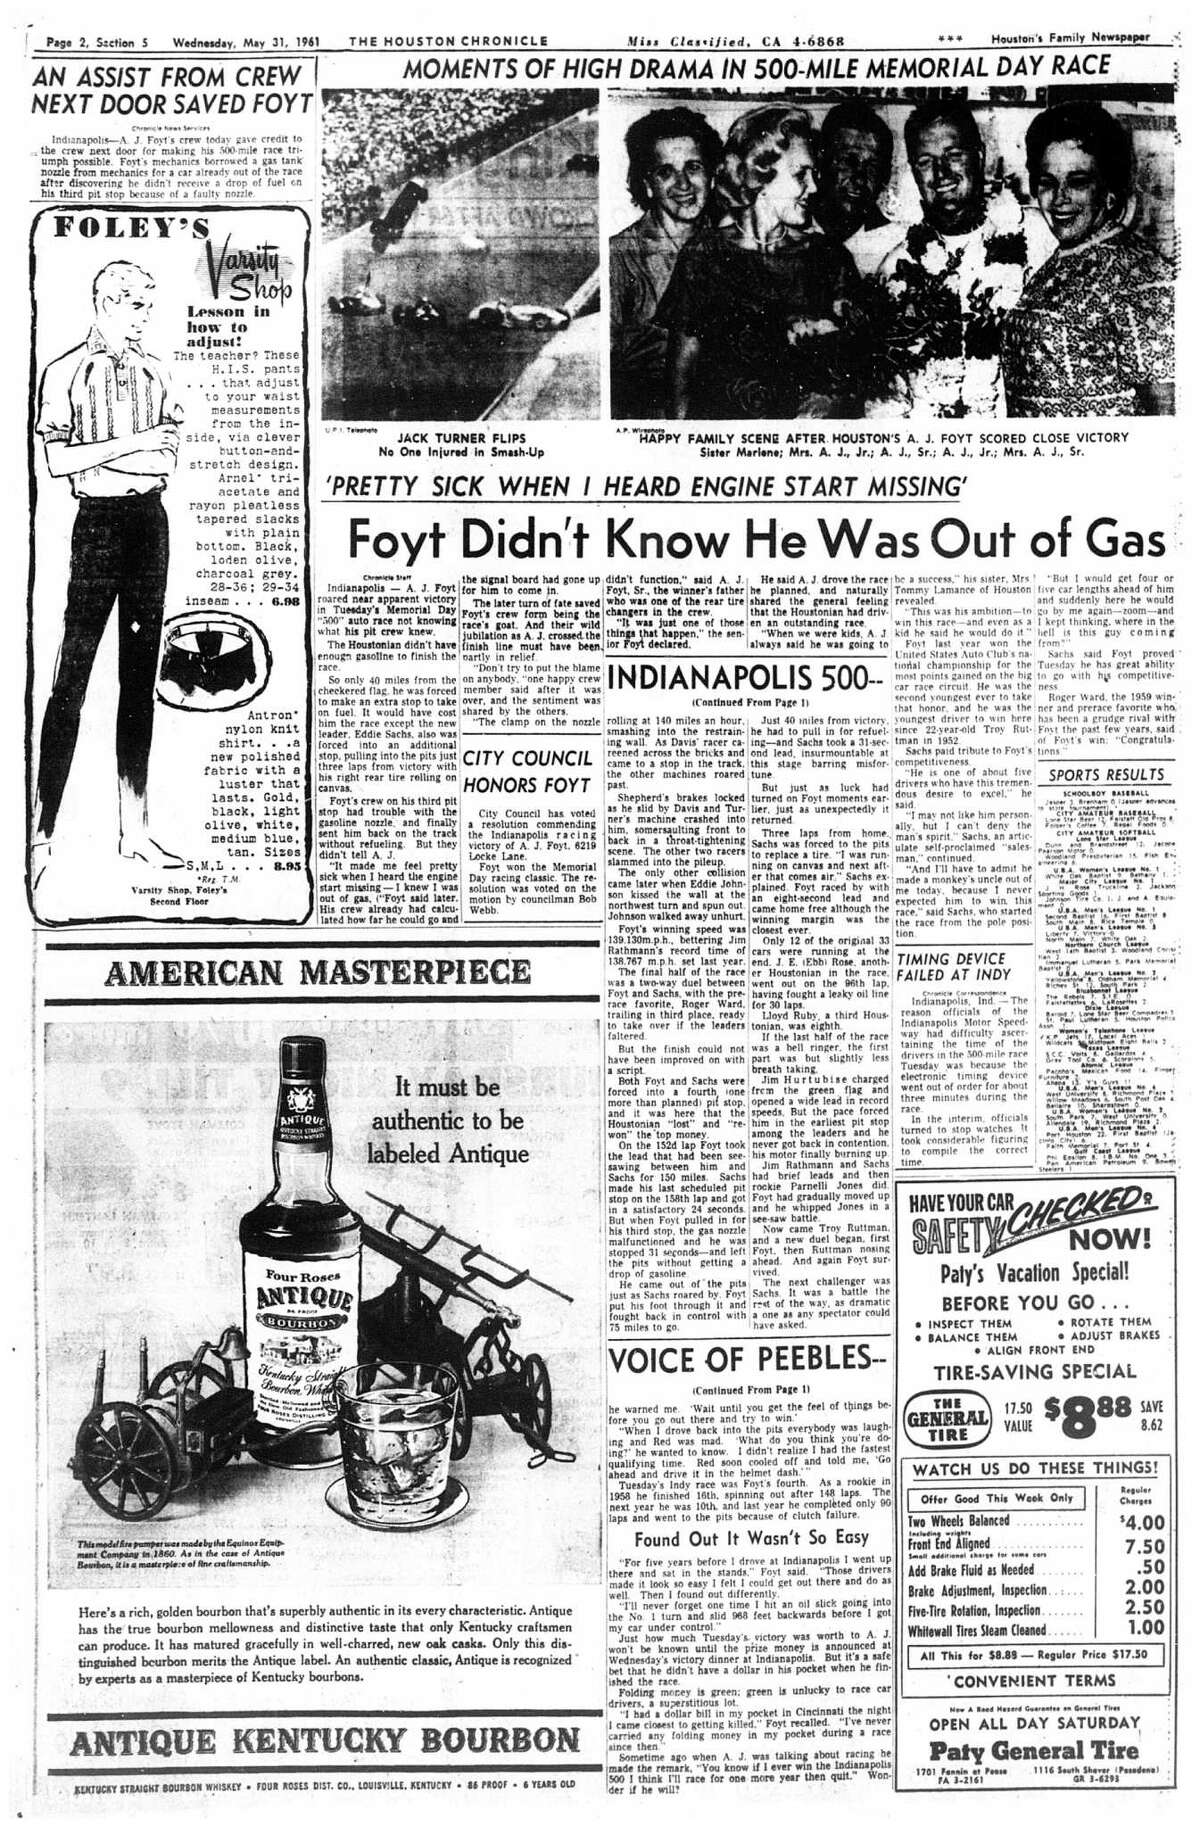 Houston Chronicle inside page (HISTORIC) Â?- May 31, 1961 - section 5, page 2. (A.J. Foyt) INDIANAPOLIS 500. Foyt Didn't Know He Was Out of Gas